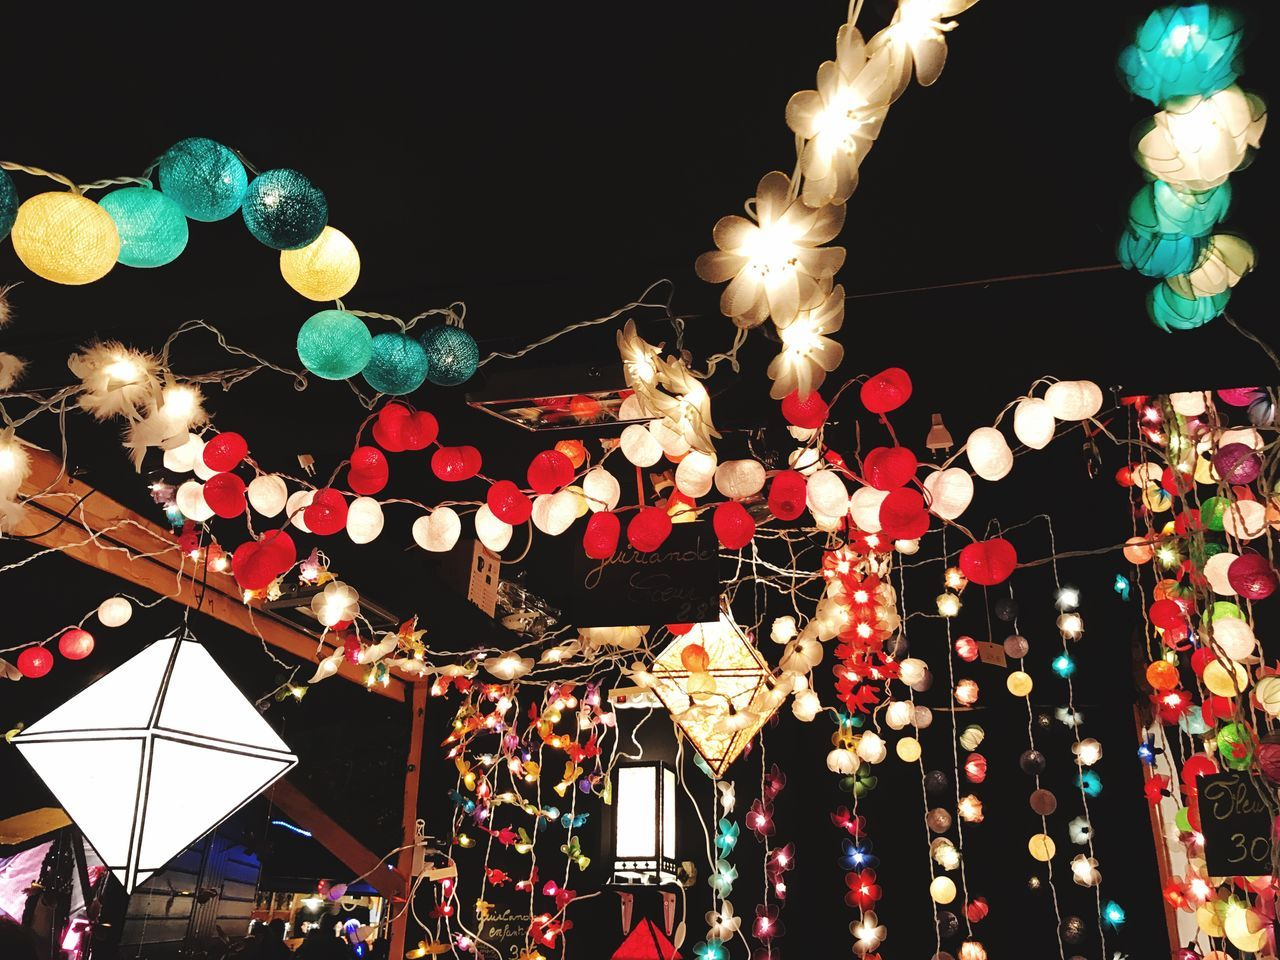 christmas decorations illuminated Low angle view Lighting equipment night Celebration no people multi colored outdoors large group of objects sky Chinese Lantern Festival